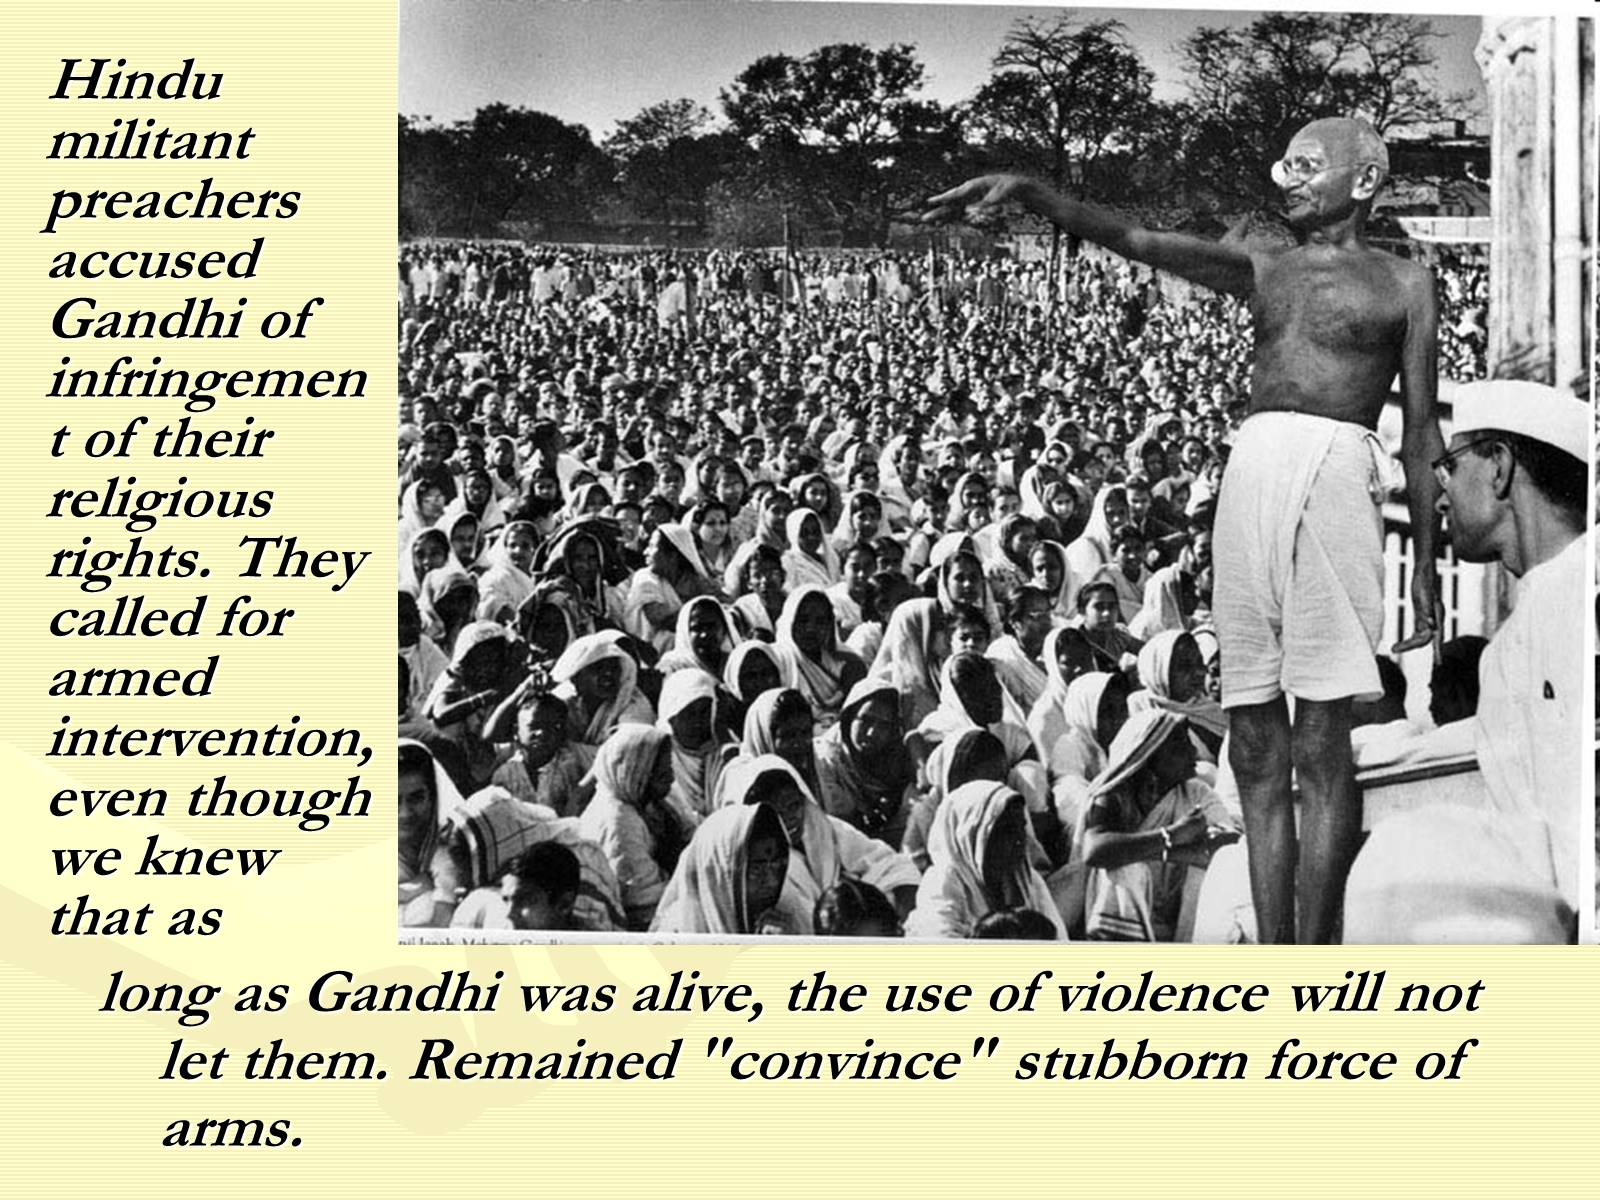 a comparison of thomas merton and mahatma gandhi in their religious beliefs Glorious thoughts of gandhi: being a treasury of about ten thousand valuable and inspiring thougths of mahatma gandhi, classified under four hundred subjects 18 copy quote silence becomes cowardice when occasion demands speaking out the whole truth and acting accordingly.